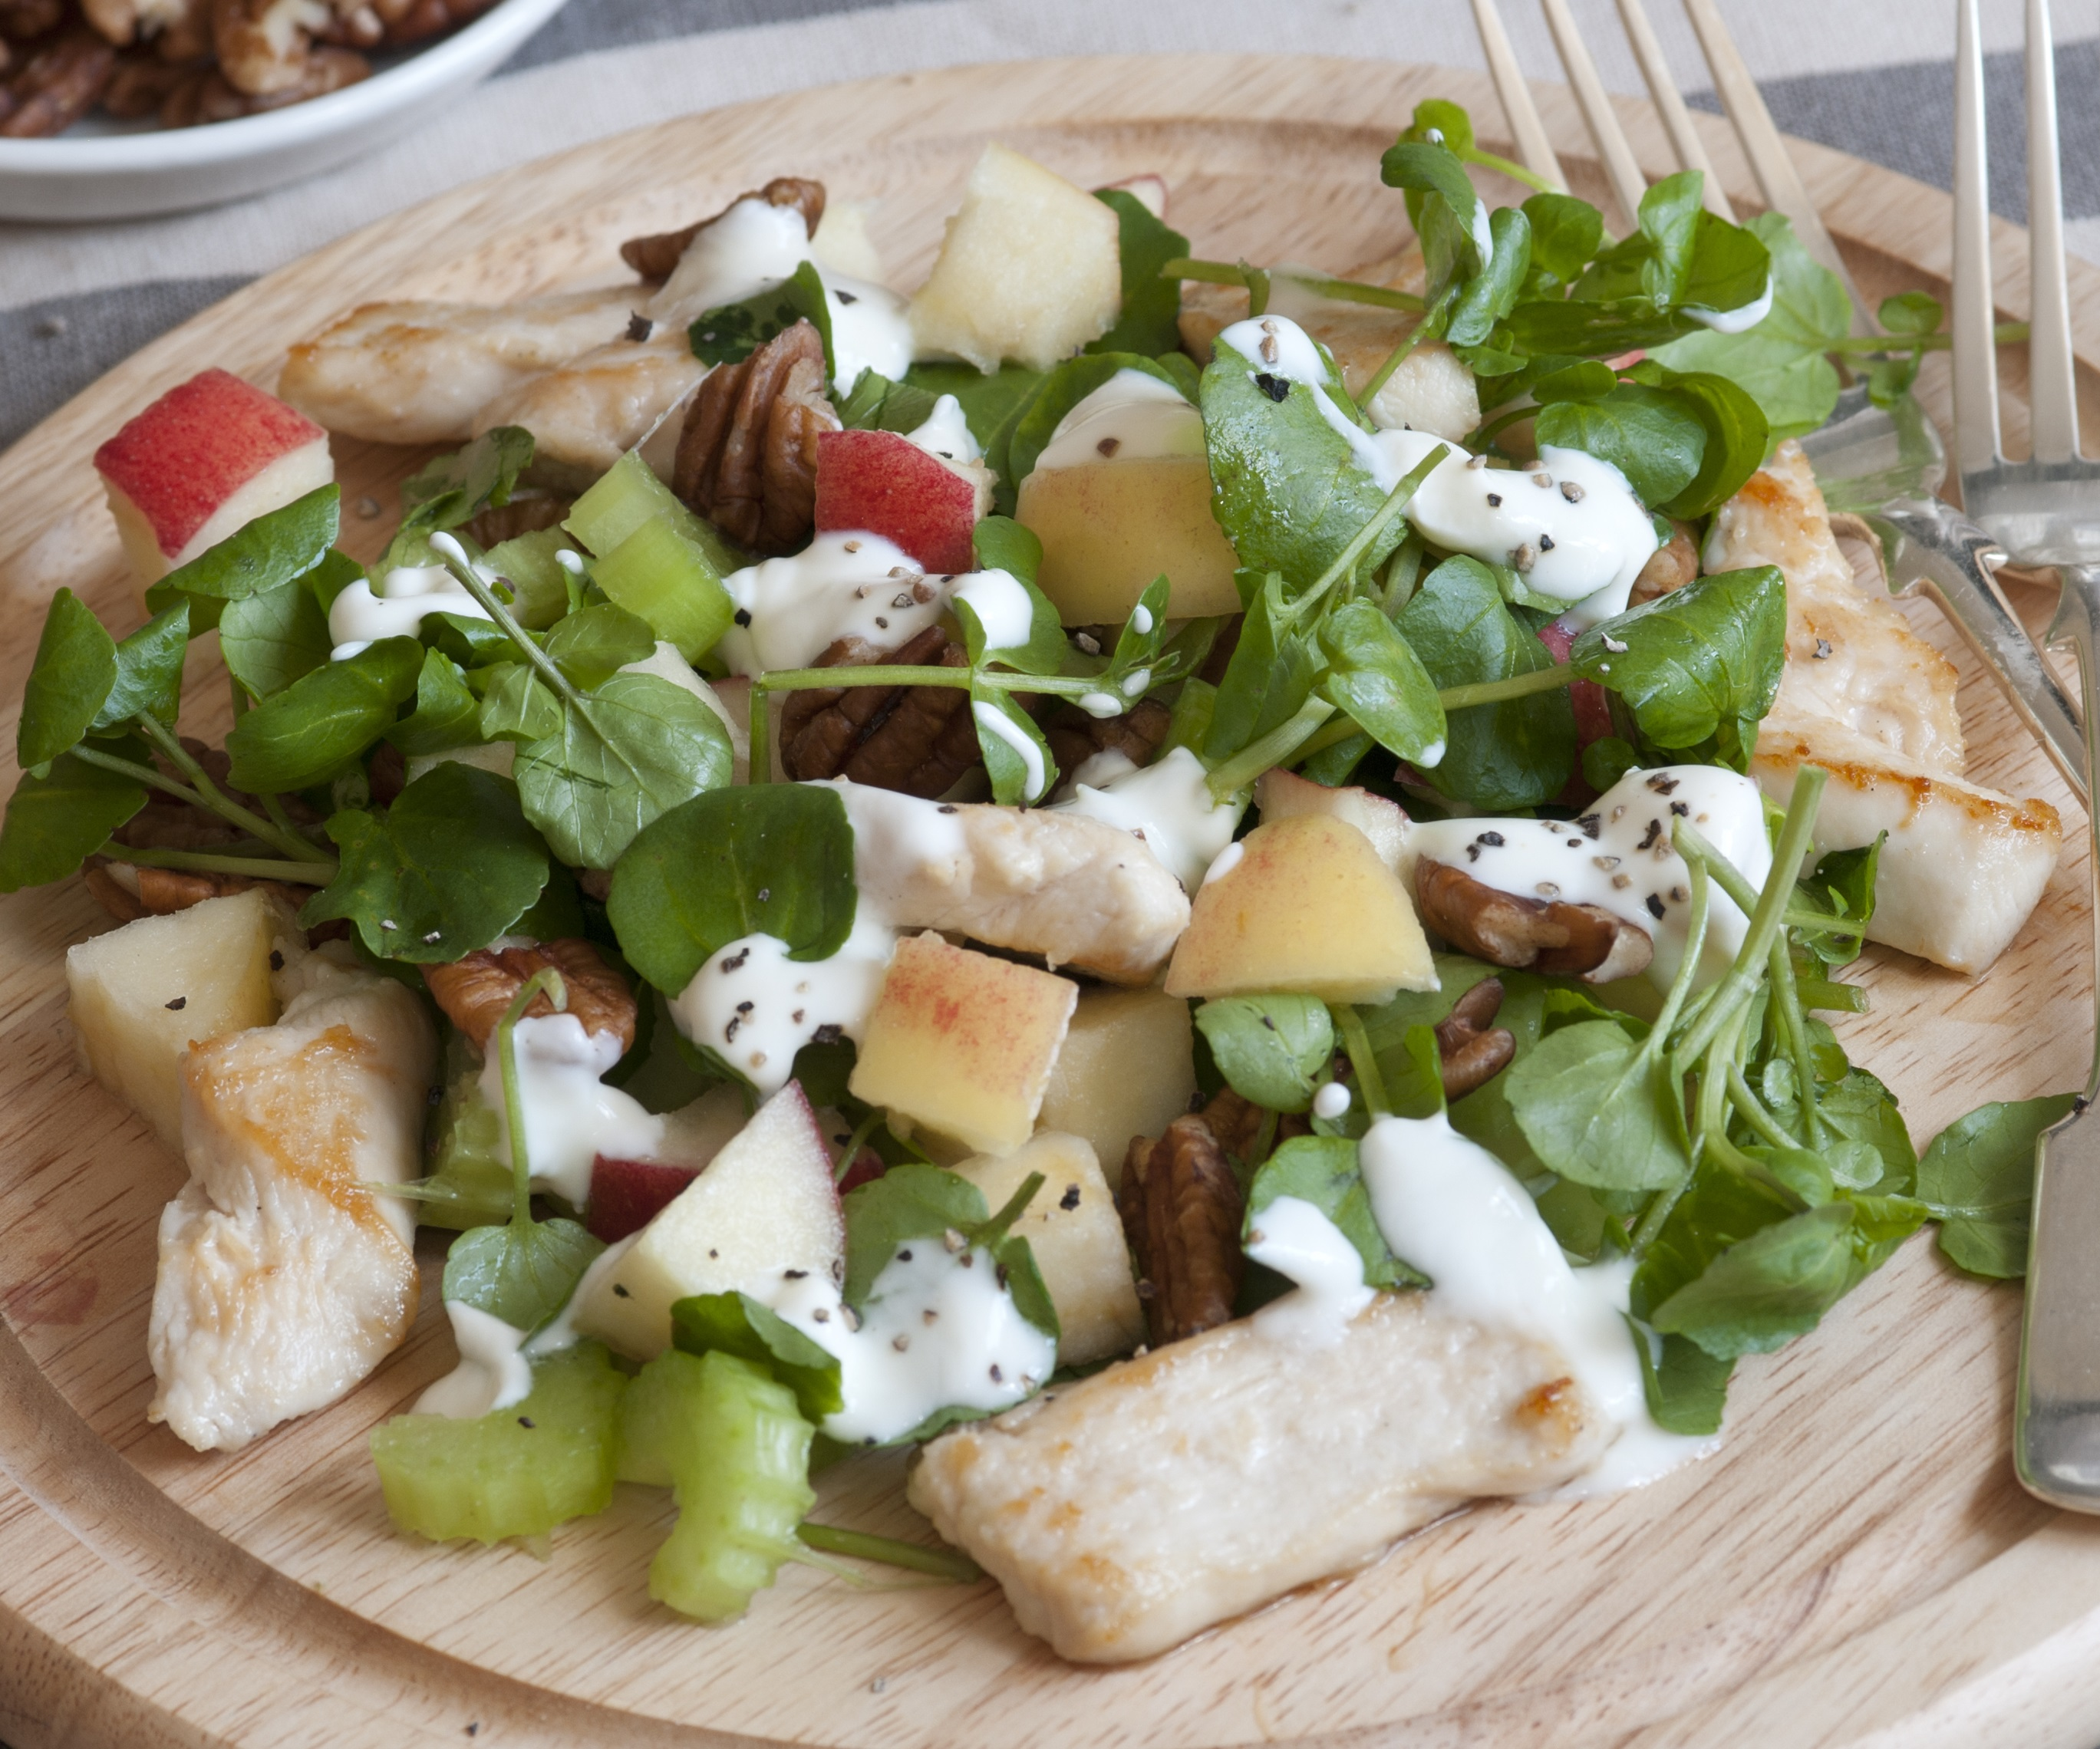 Recipes Course Salad Meat and Seafood Chicken Waldorf Salad